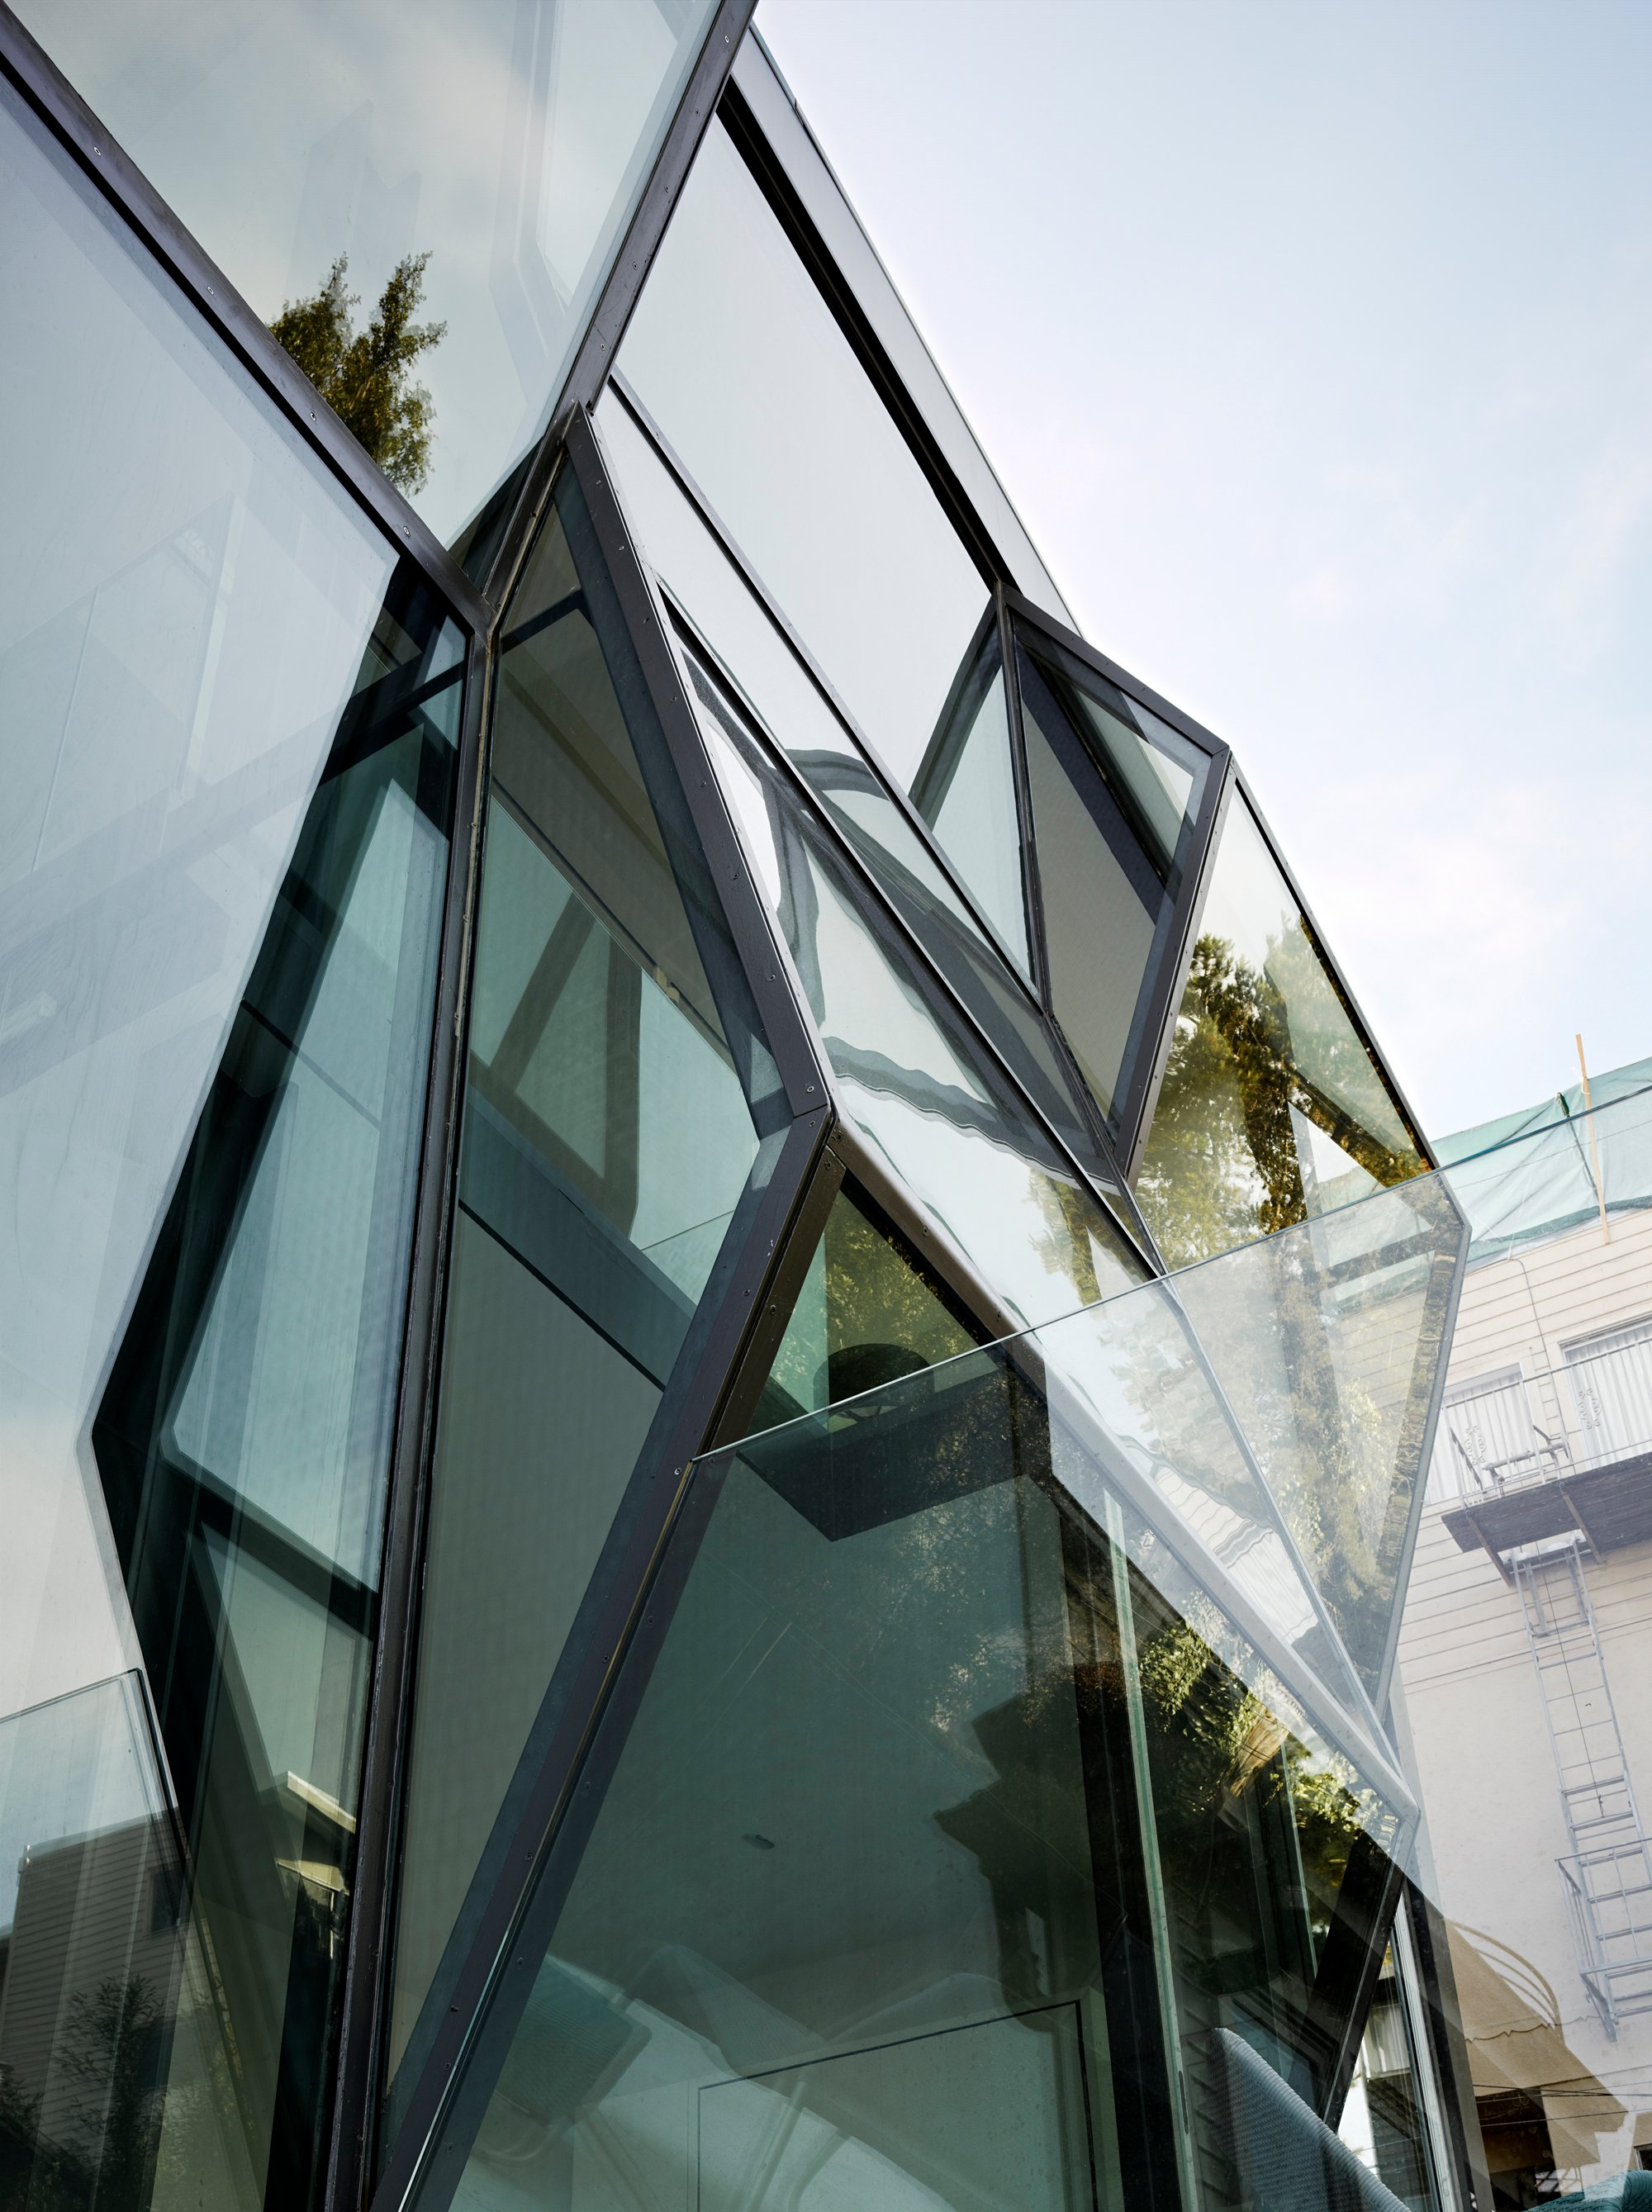 Finally, a few of the rear glass prism facade as seen from the ground level. Glass panels in multiple angles refract reflections of the surrounding nature, diffusing any flat surfaces.